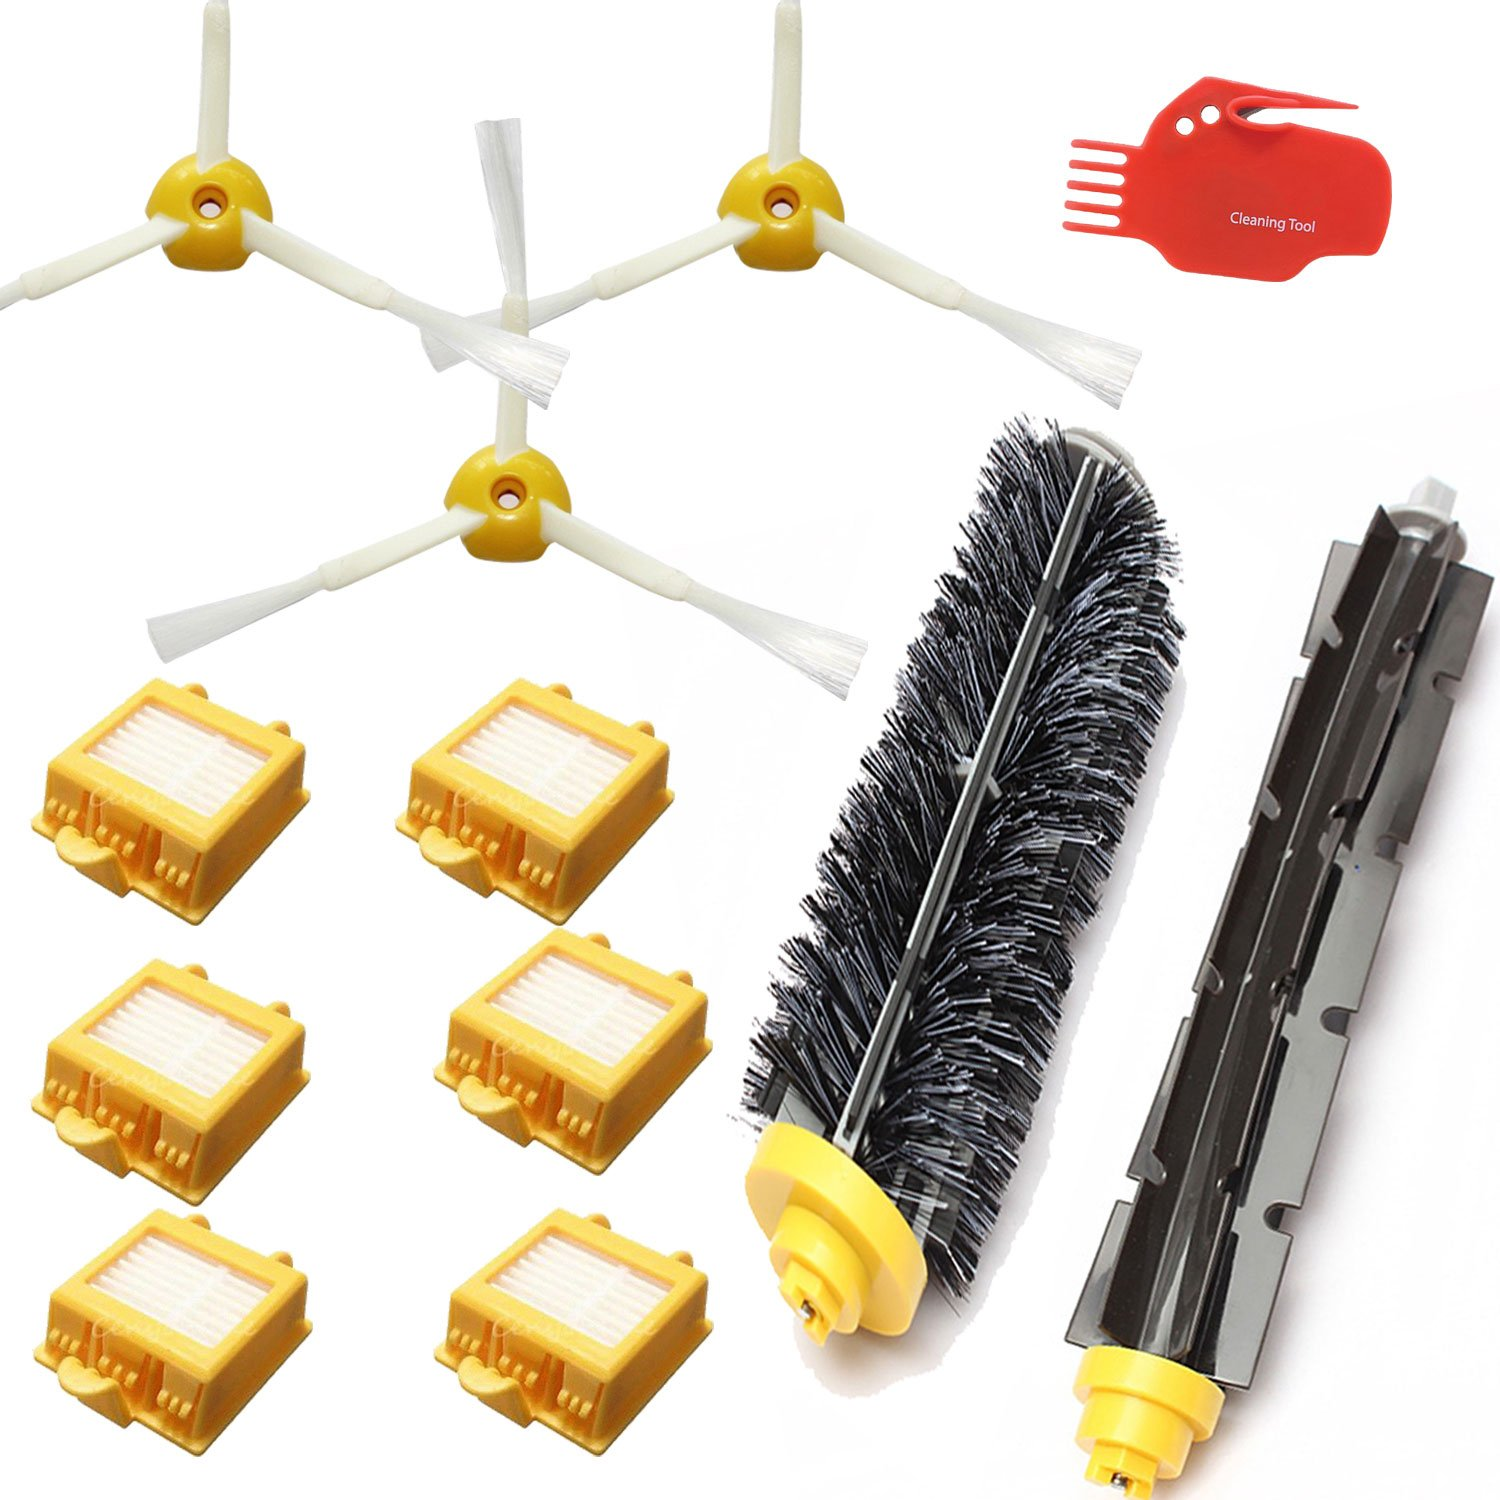 Smartide Accessory Kit for Irobot Roomba 700 760 770 780 790 Vacuum Cleaner Kit - Includes 6 Pc Filter, 3pc Side Brush, and 1 Pc Bristle Brush and Flexible Beater Brush, Cleaning Tool IRO-700